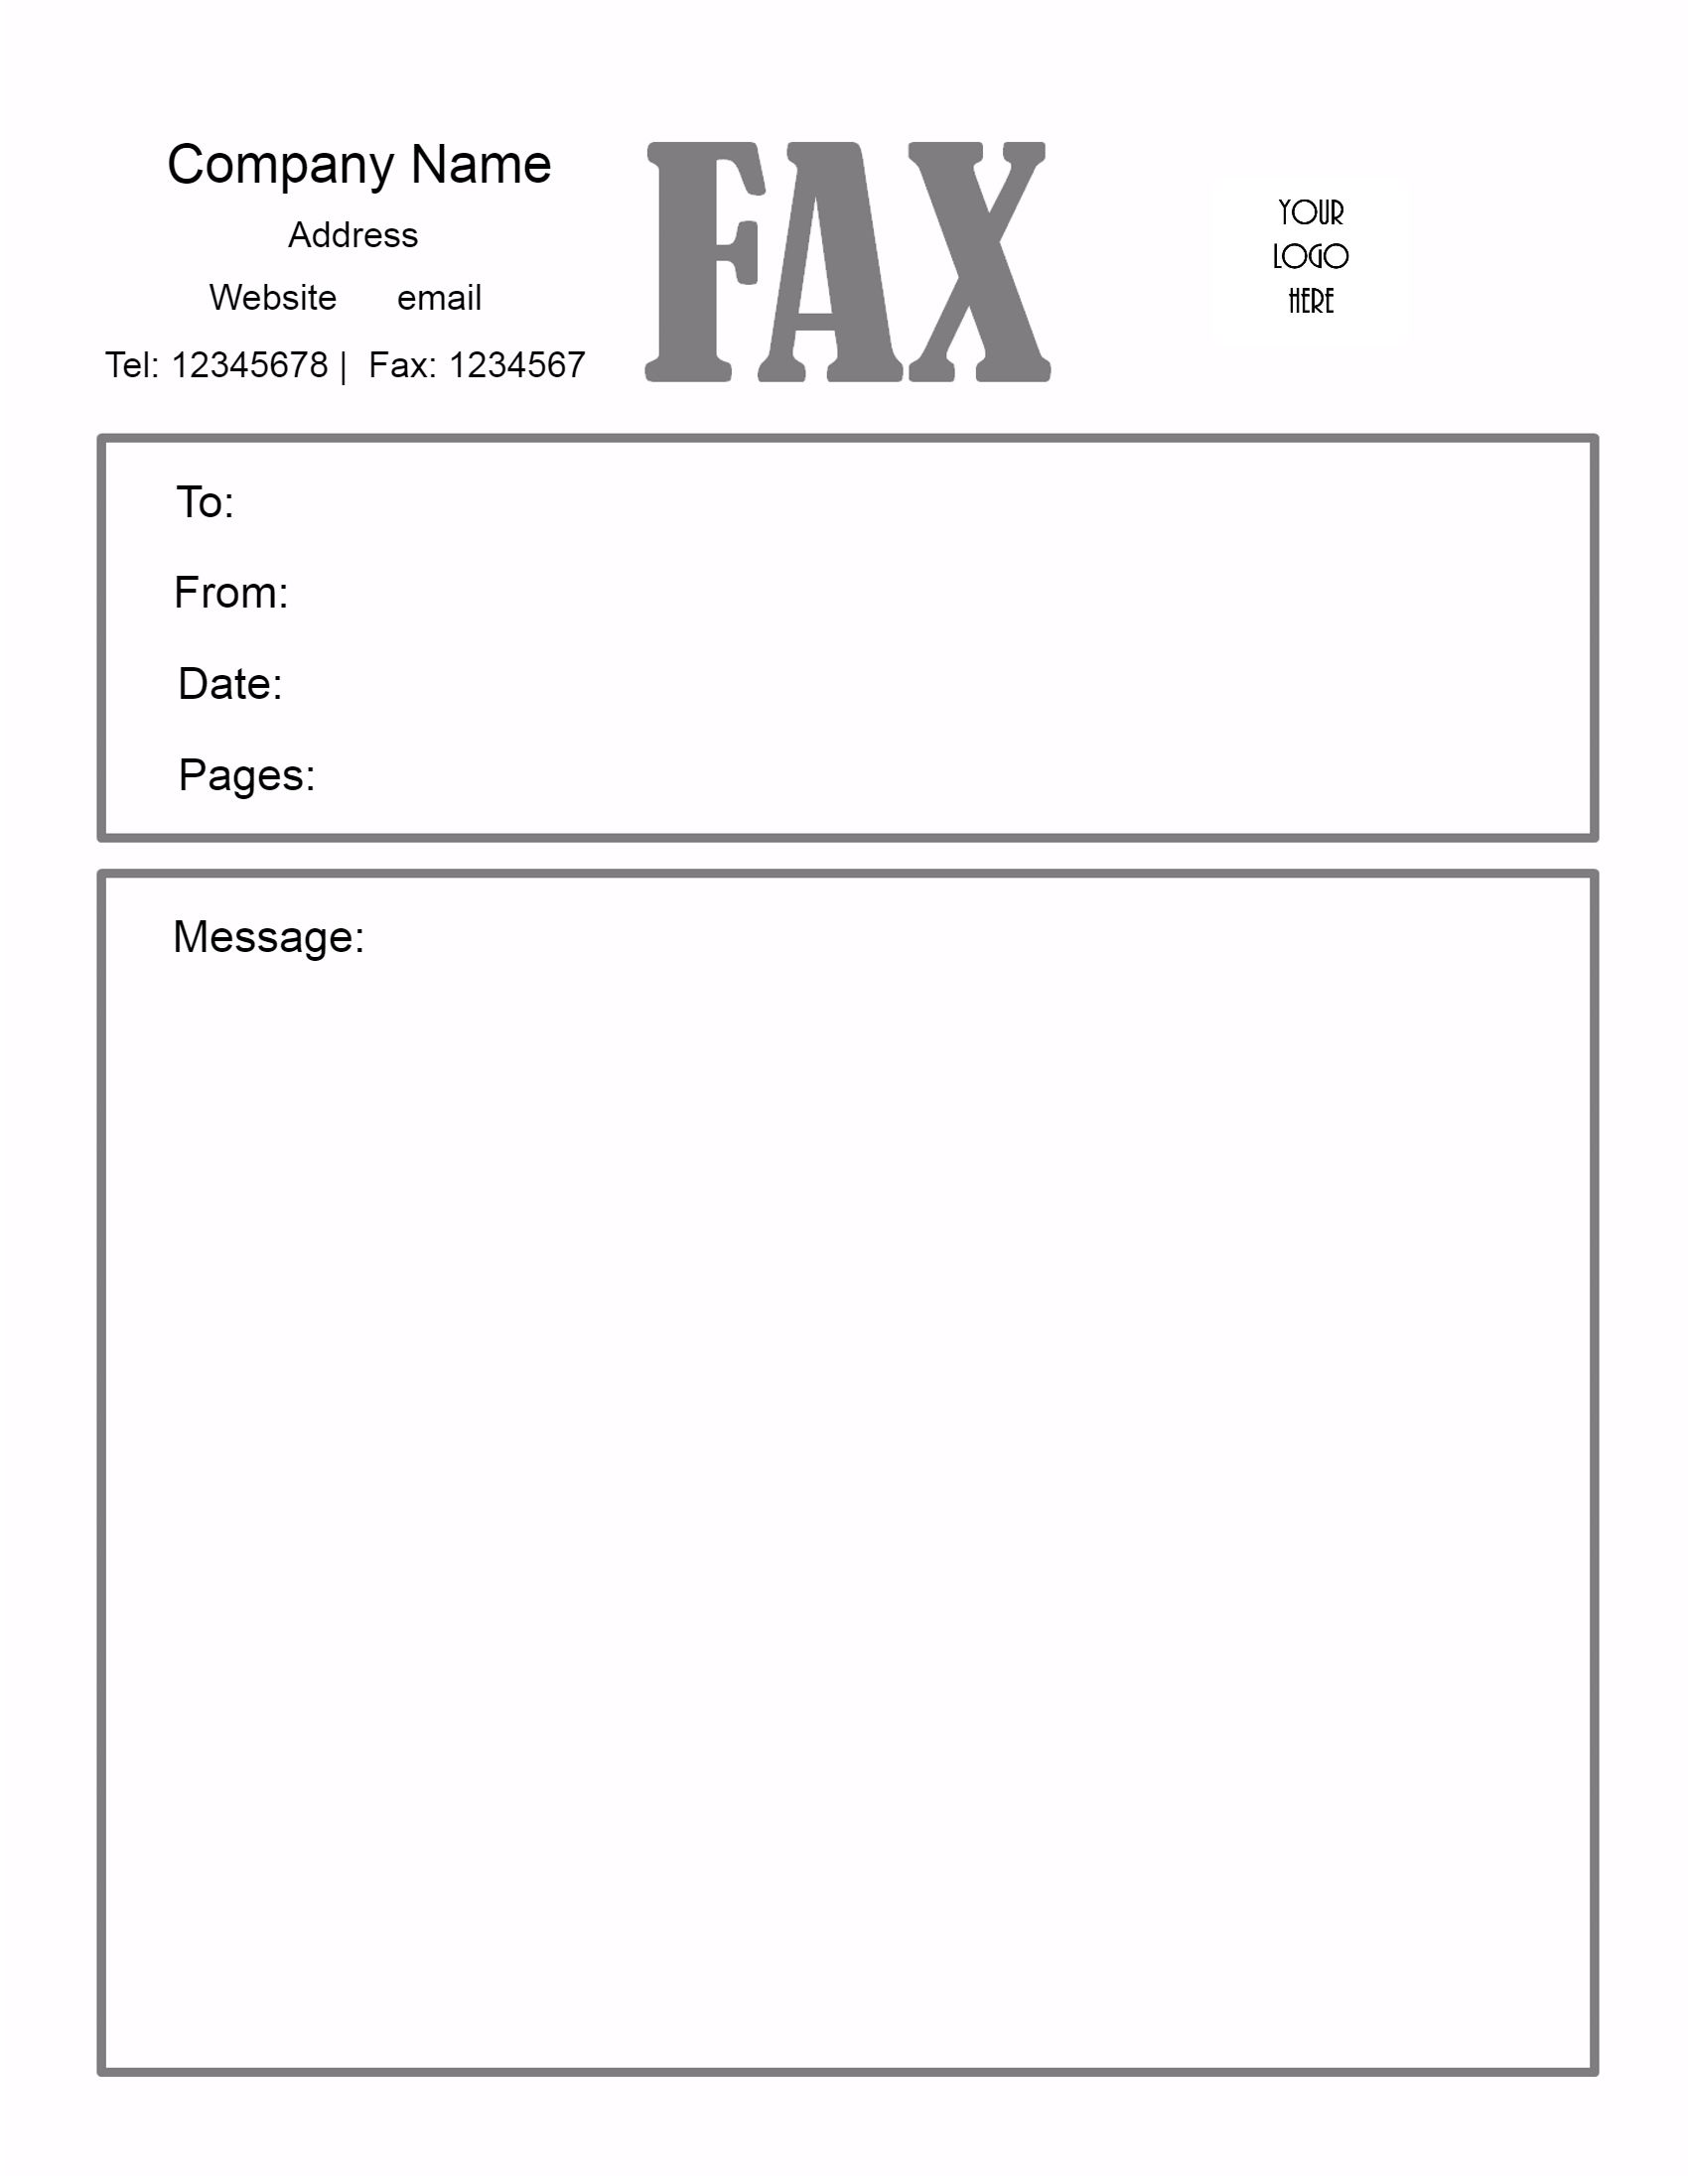 fax cover sheet letter Business etiquette for fax cover letters the fax cover sheet should contain the company name at the top of the form if the company uses a logo.